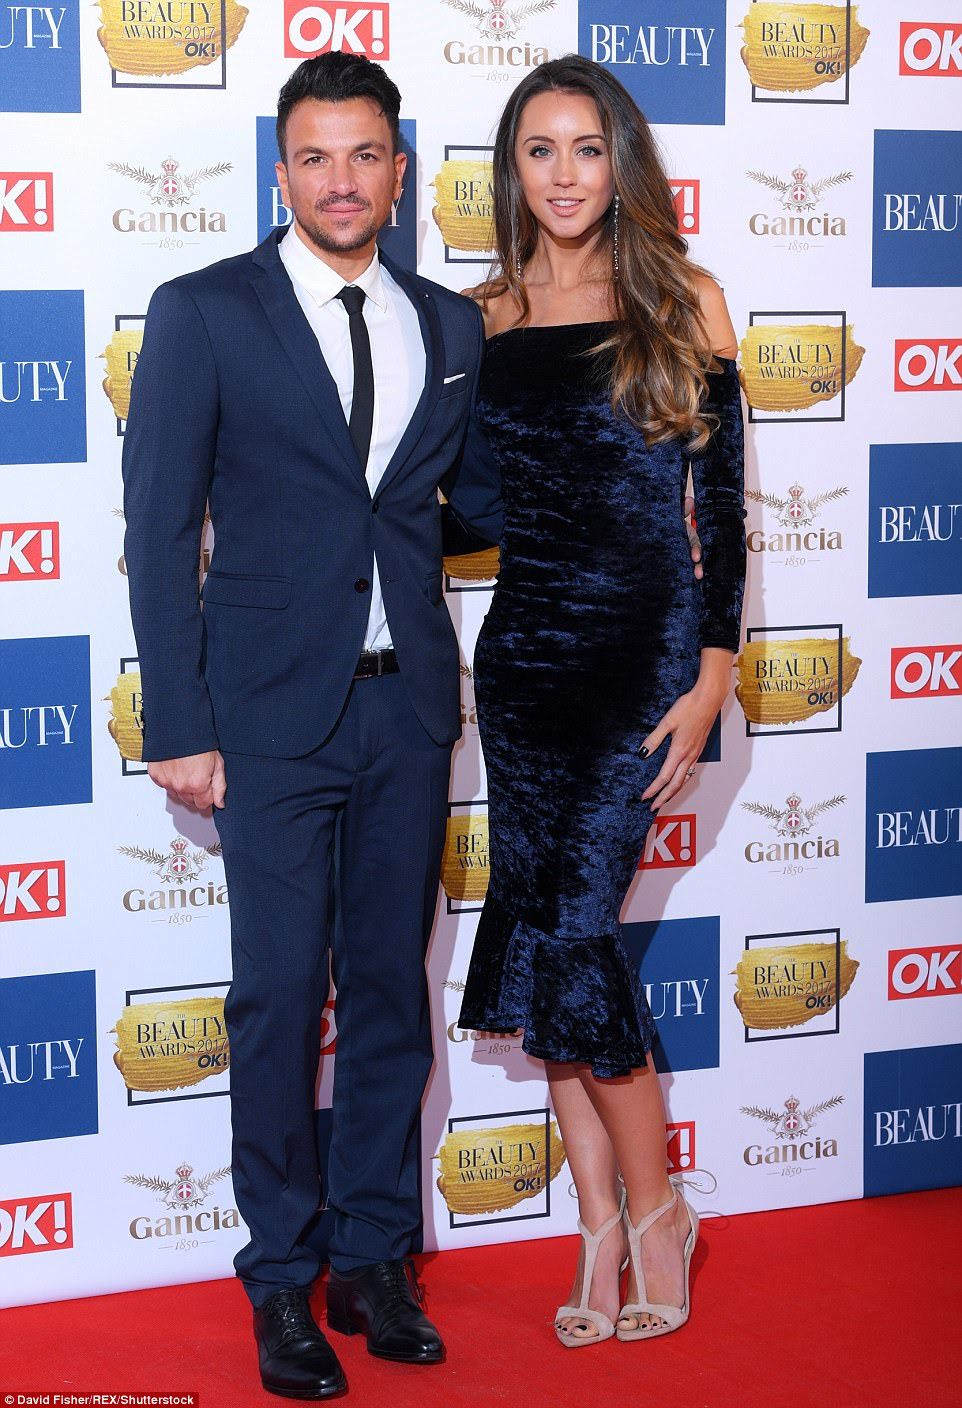 The happy couple:Peter Andre left his troubles behind as he hit the red carpet with his doctor wife Emily MacDonagh at Tuesday evening's glitzy OK! Magazine Beauty Awards 2017, where the couple looked unfazed by the headlines